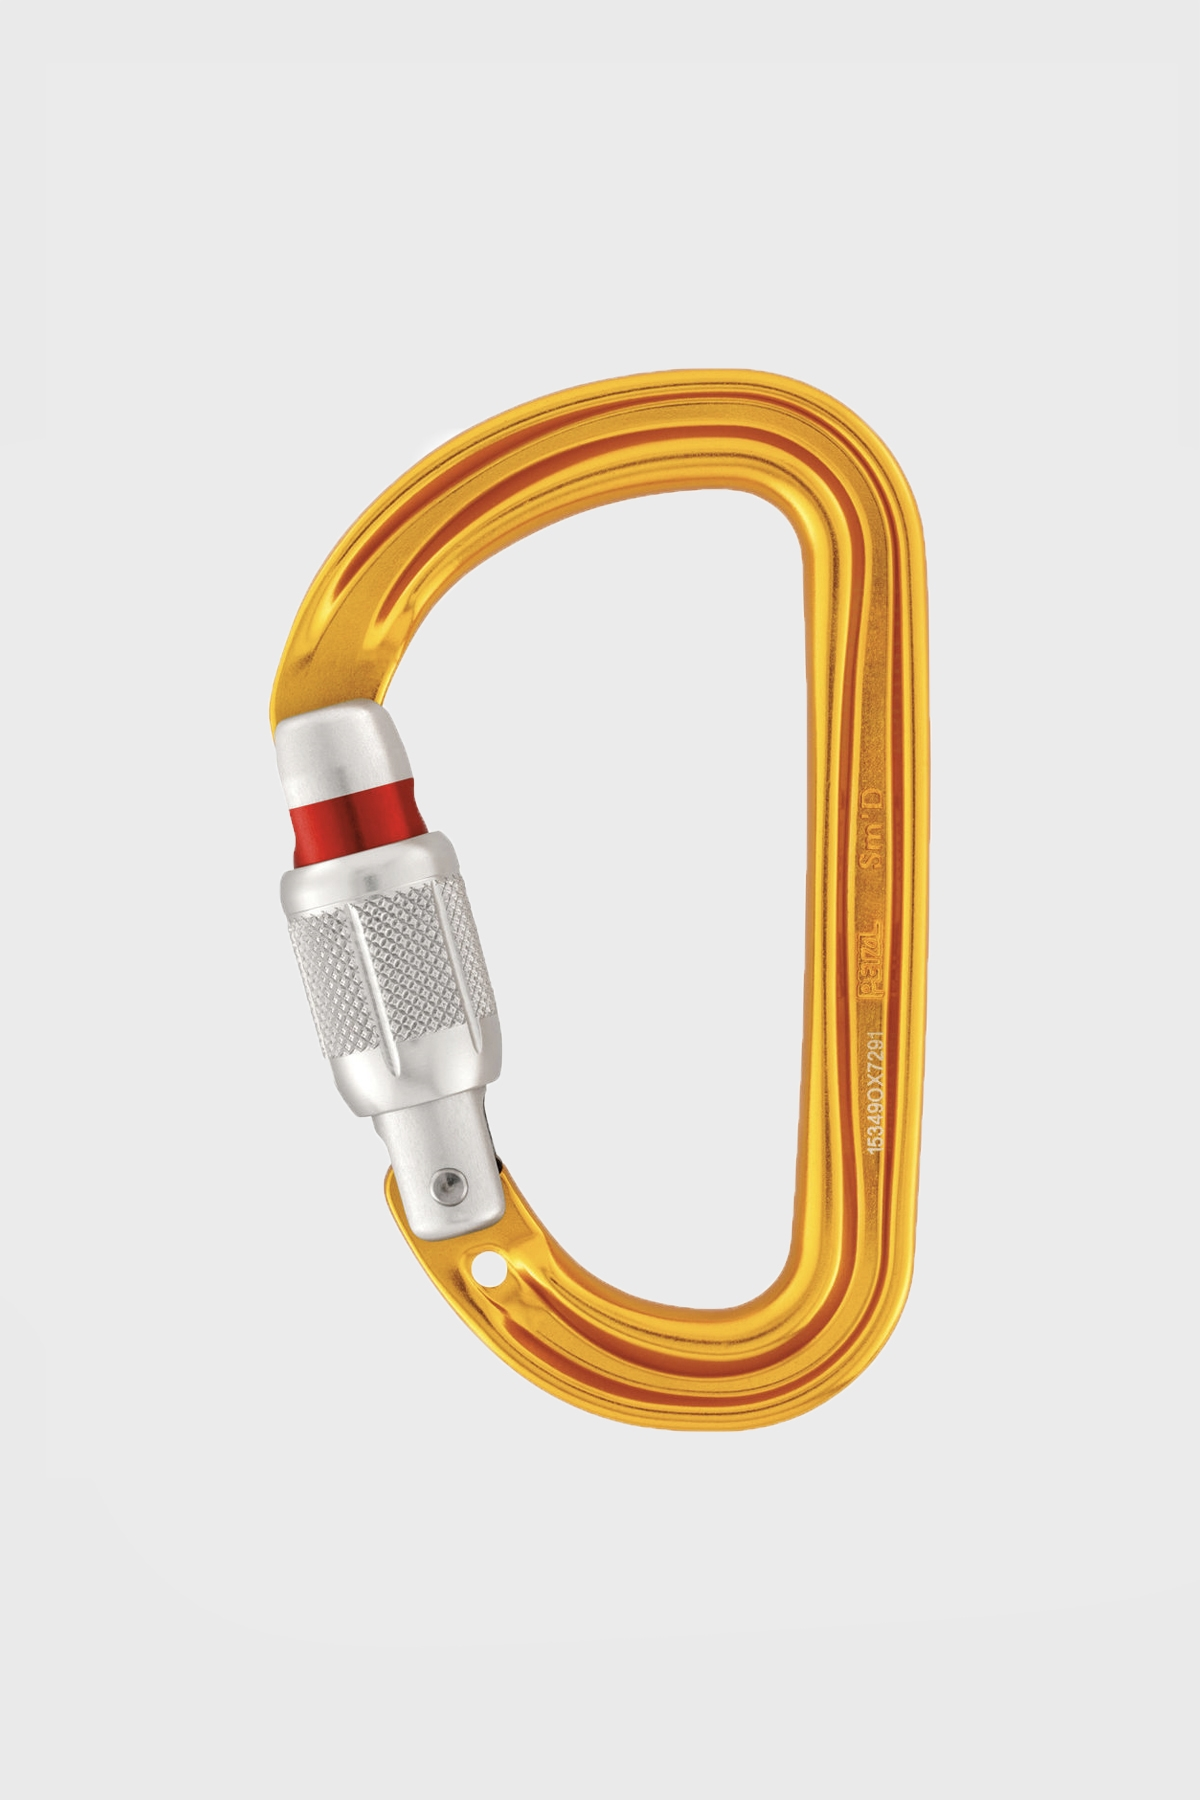 Petzl - SM'D Screw - Orange